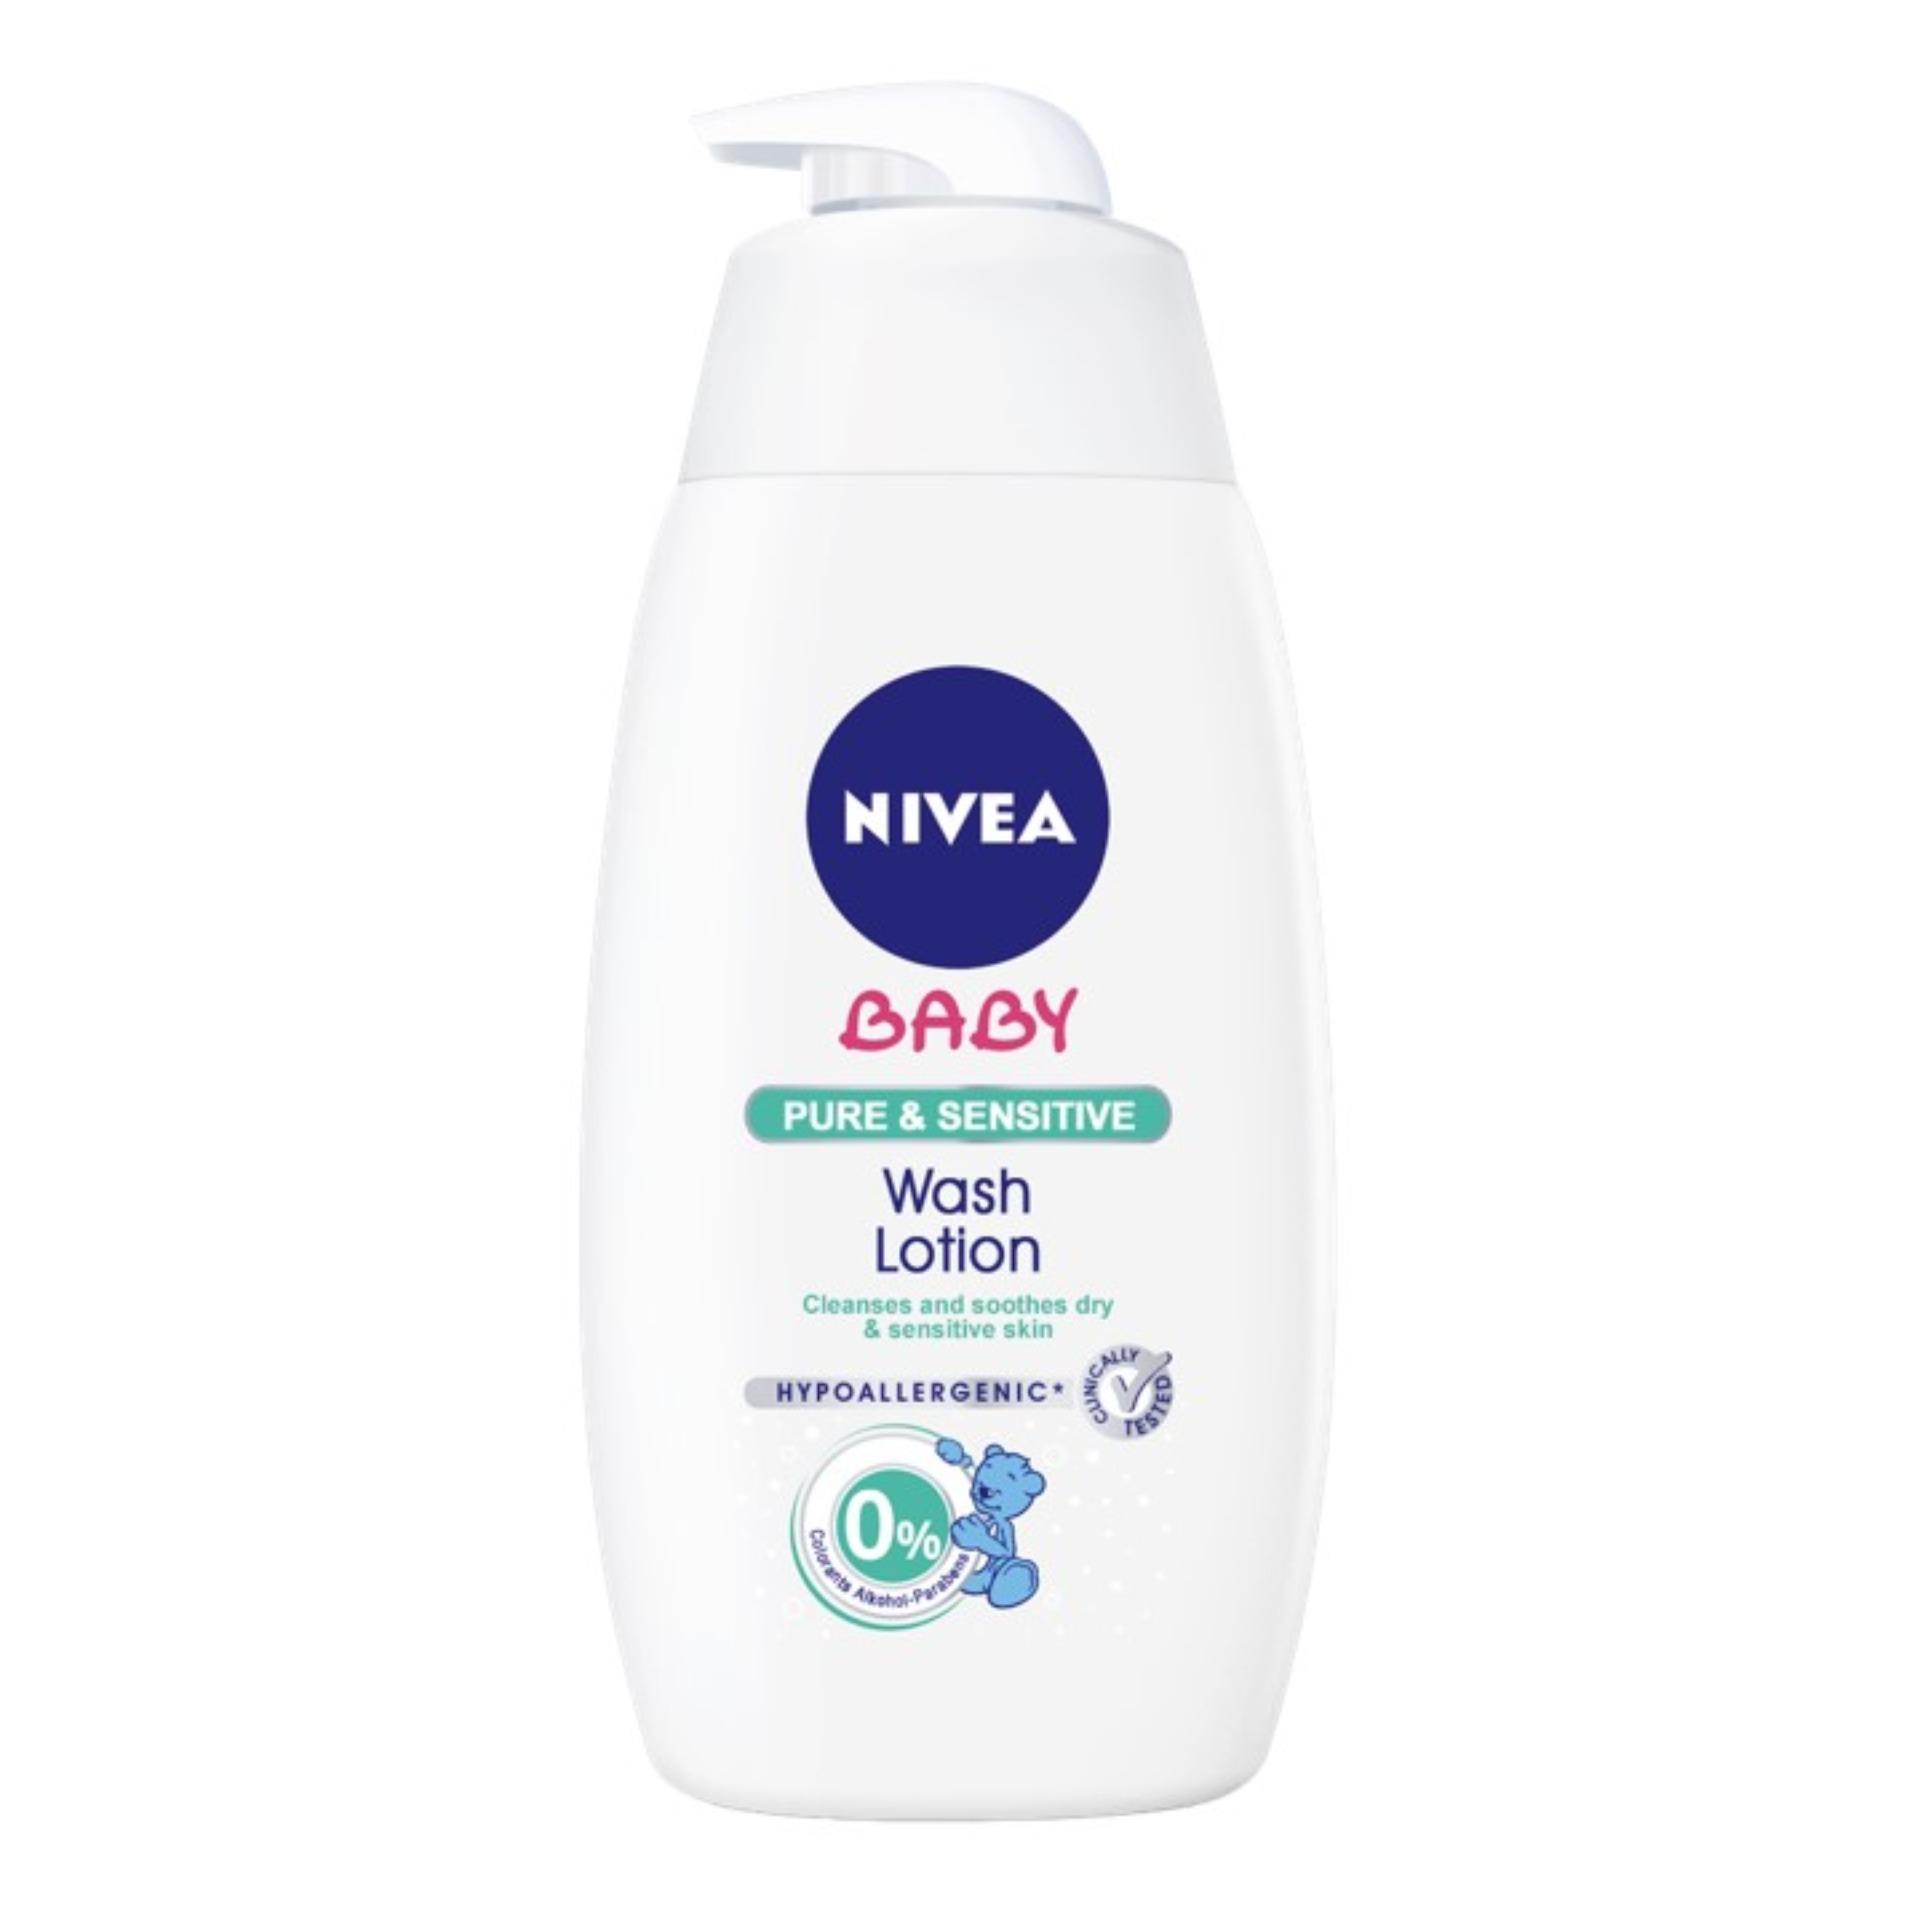 Nivea Philippines Price List Lotion Deodorant Baby Extra White Anti Age Spf33 Serum 180ml Wipes Facial Foam Cleanser For Sale Lazada